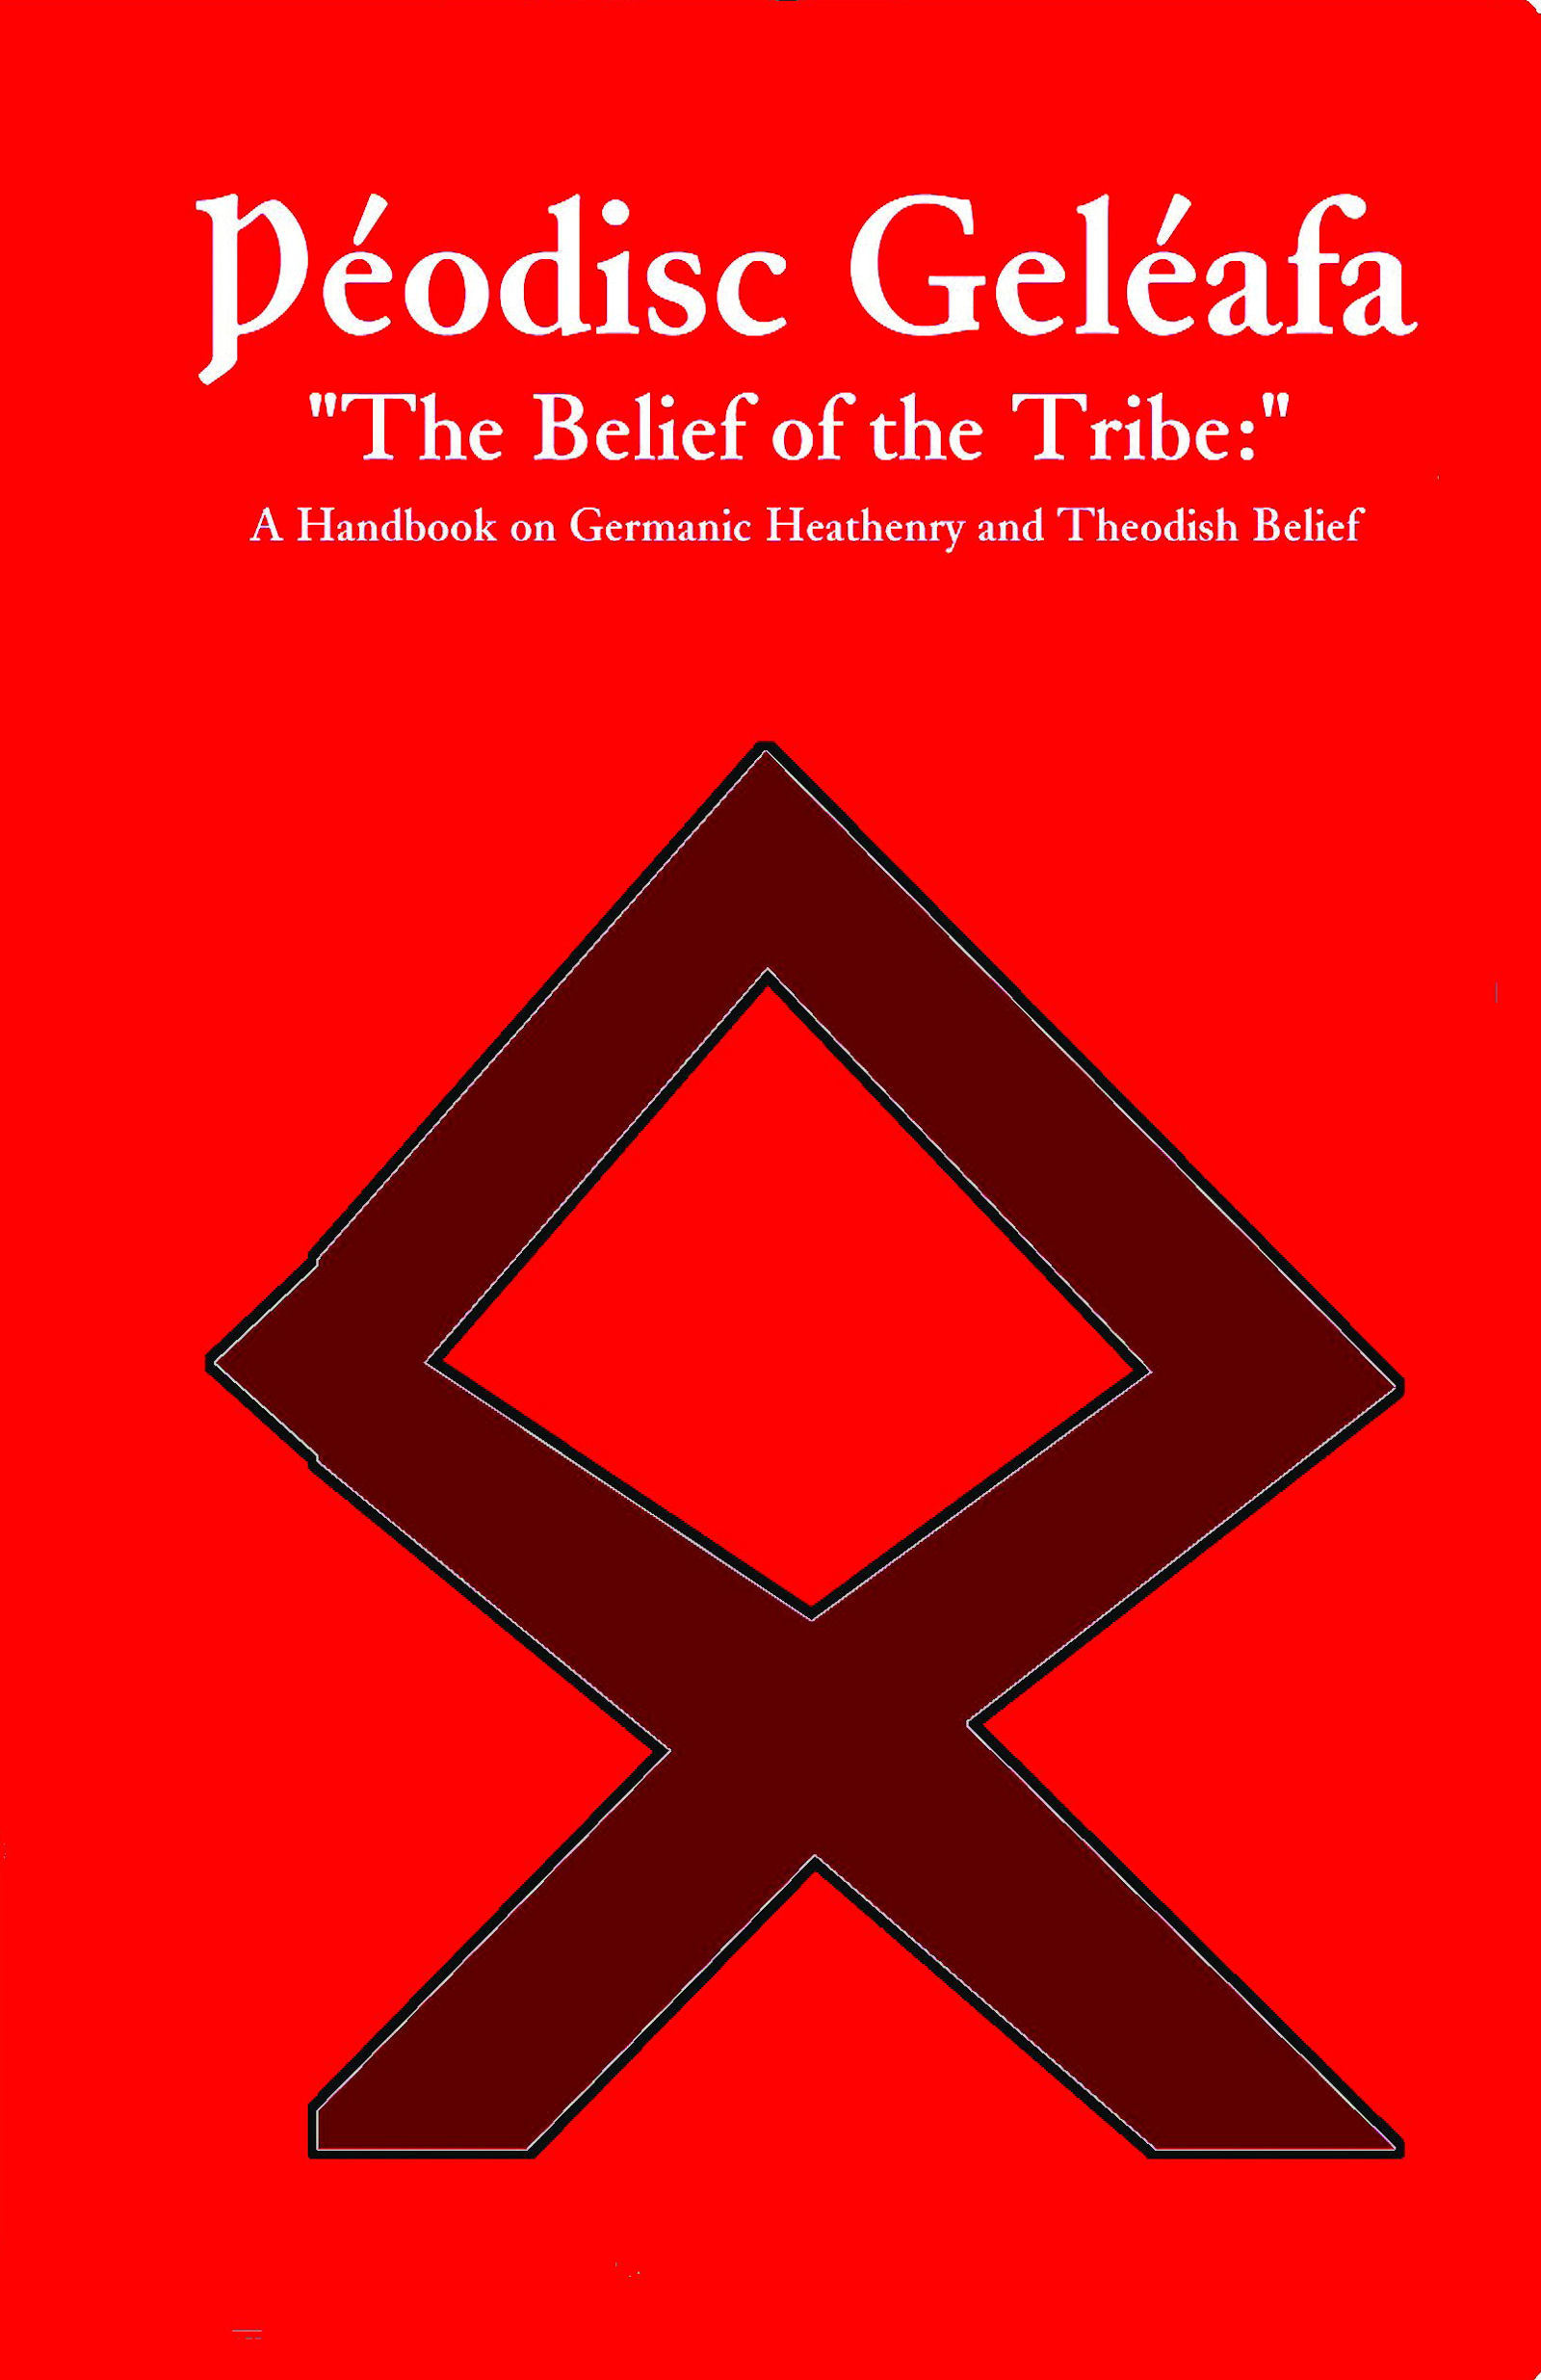 "Þéodisc Geléafa ""The Belief of the Tribe: "": A Handbook on Germanic Heathenry and Theodish Belief"